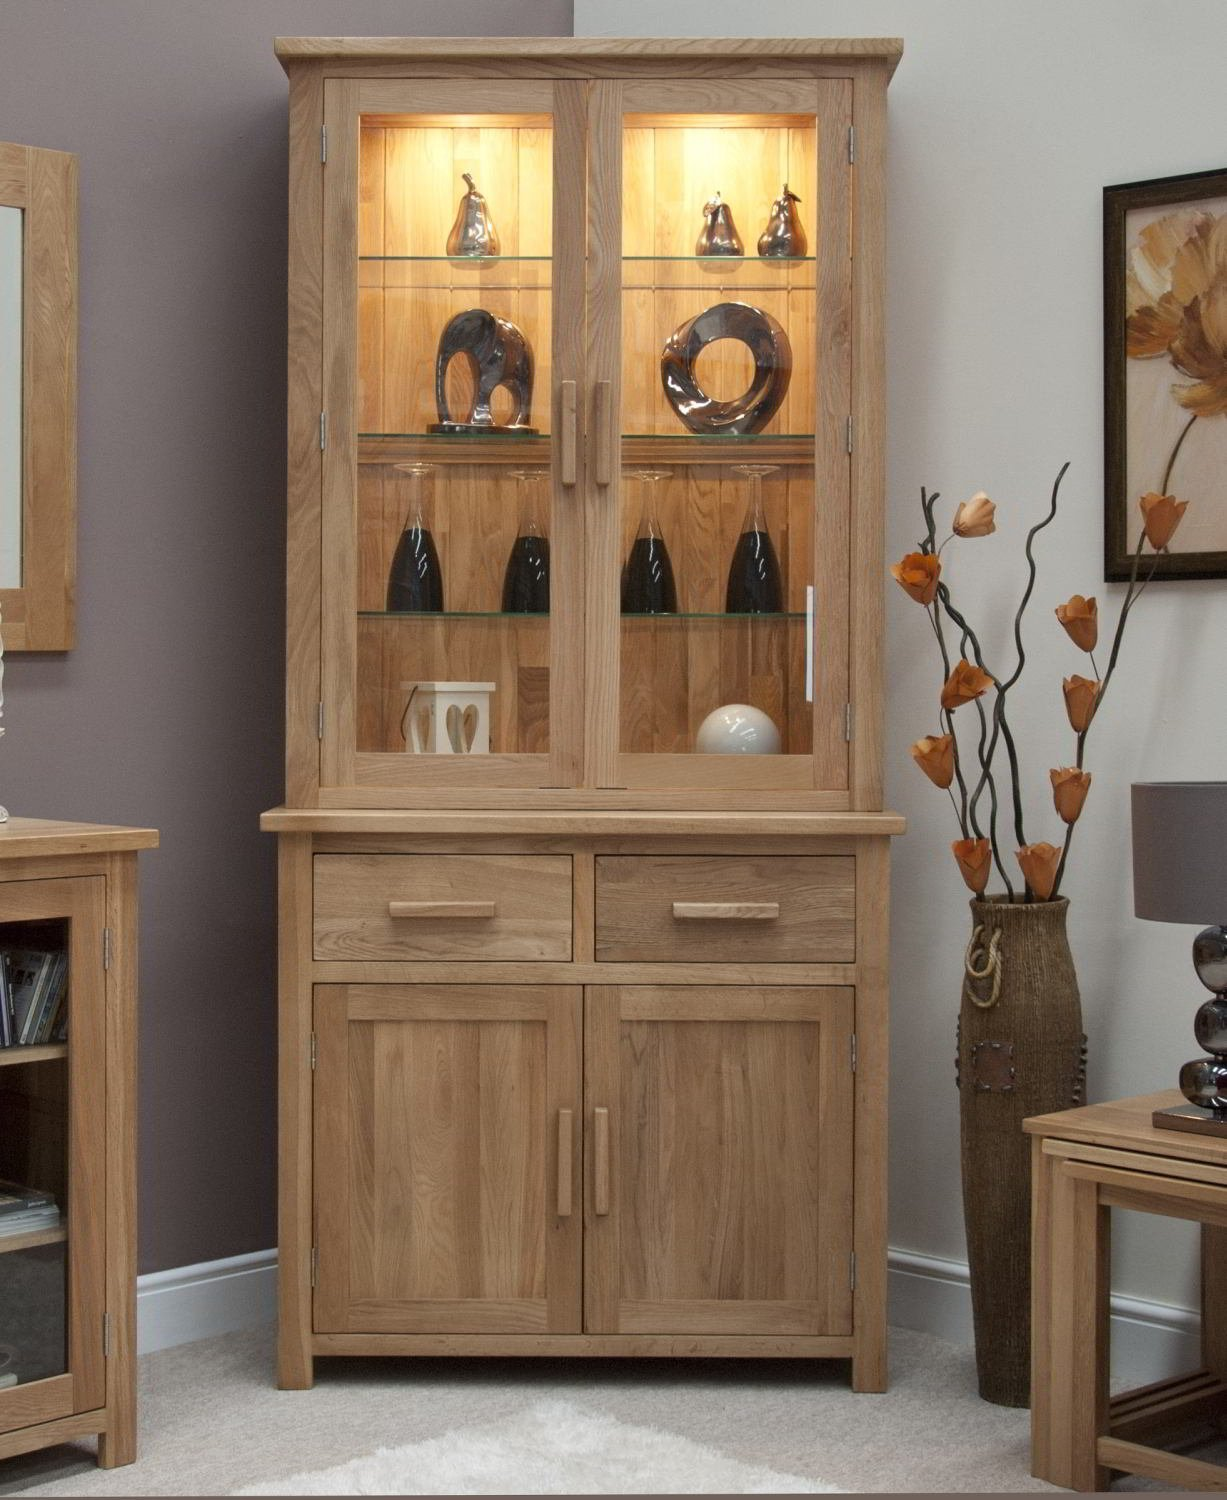 Eton Solid Oak Furniture Small Dresser Display Cabinet: Amazon.co.uk:  Kitchen U0026 Home